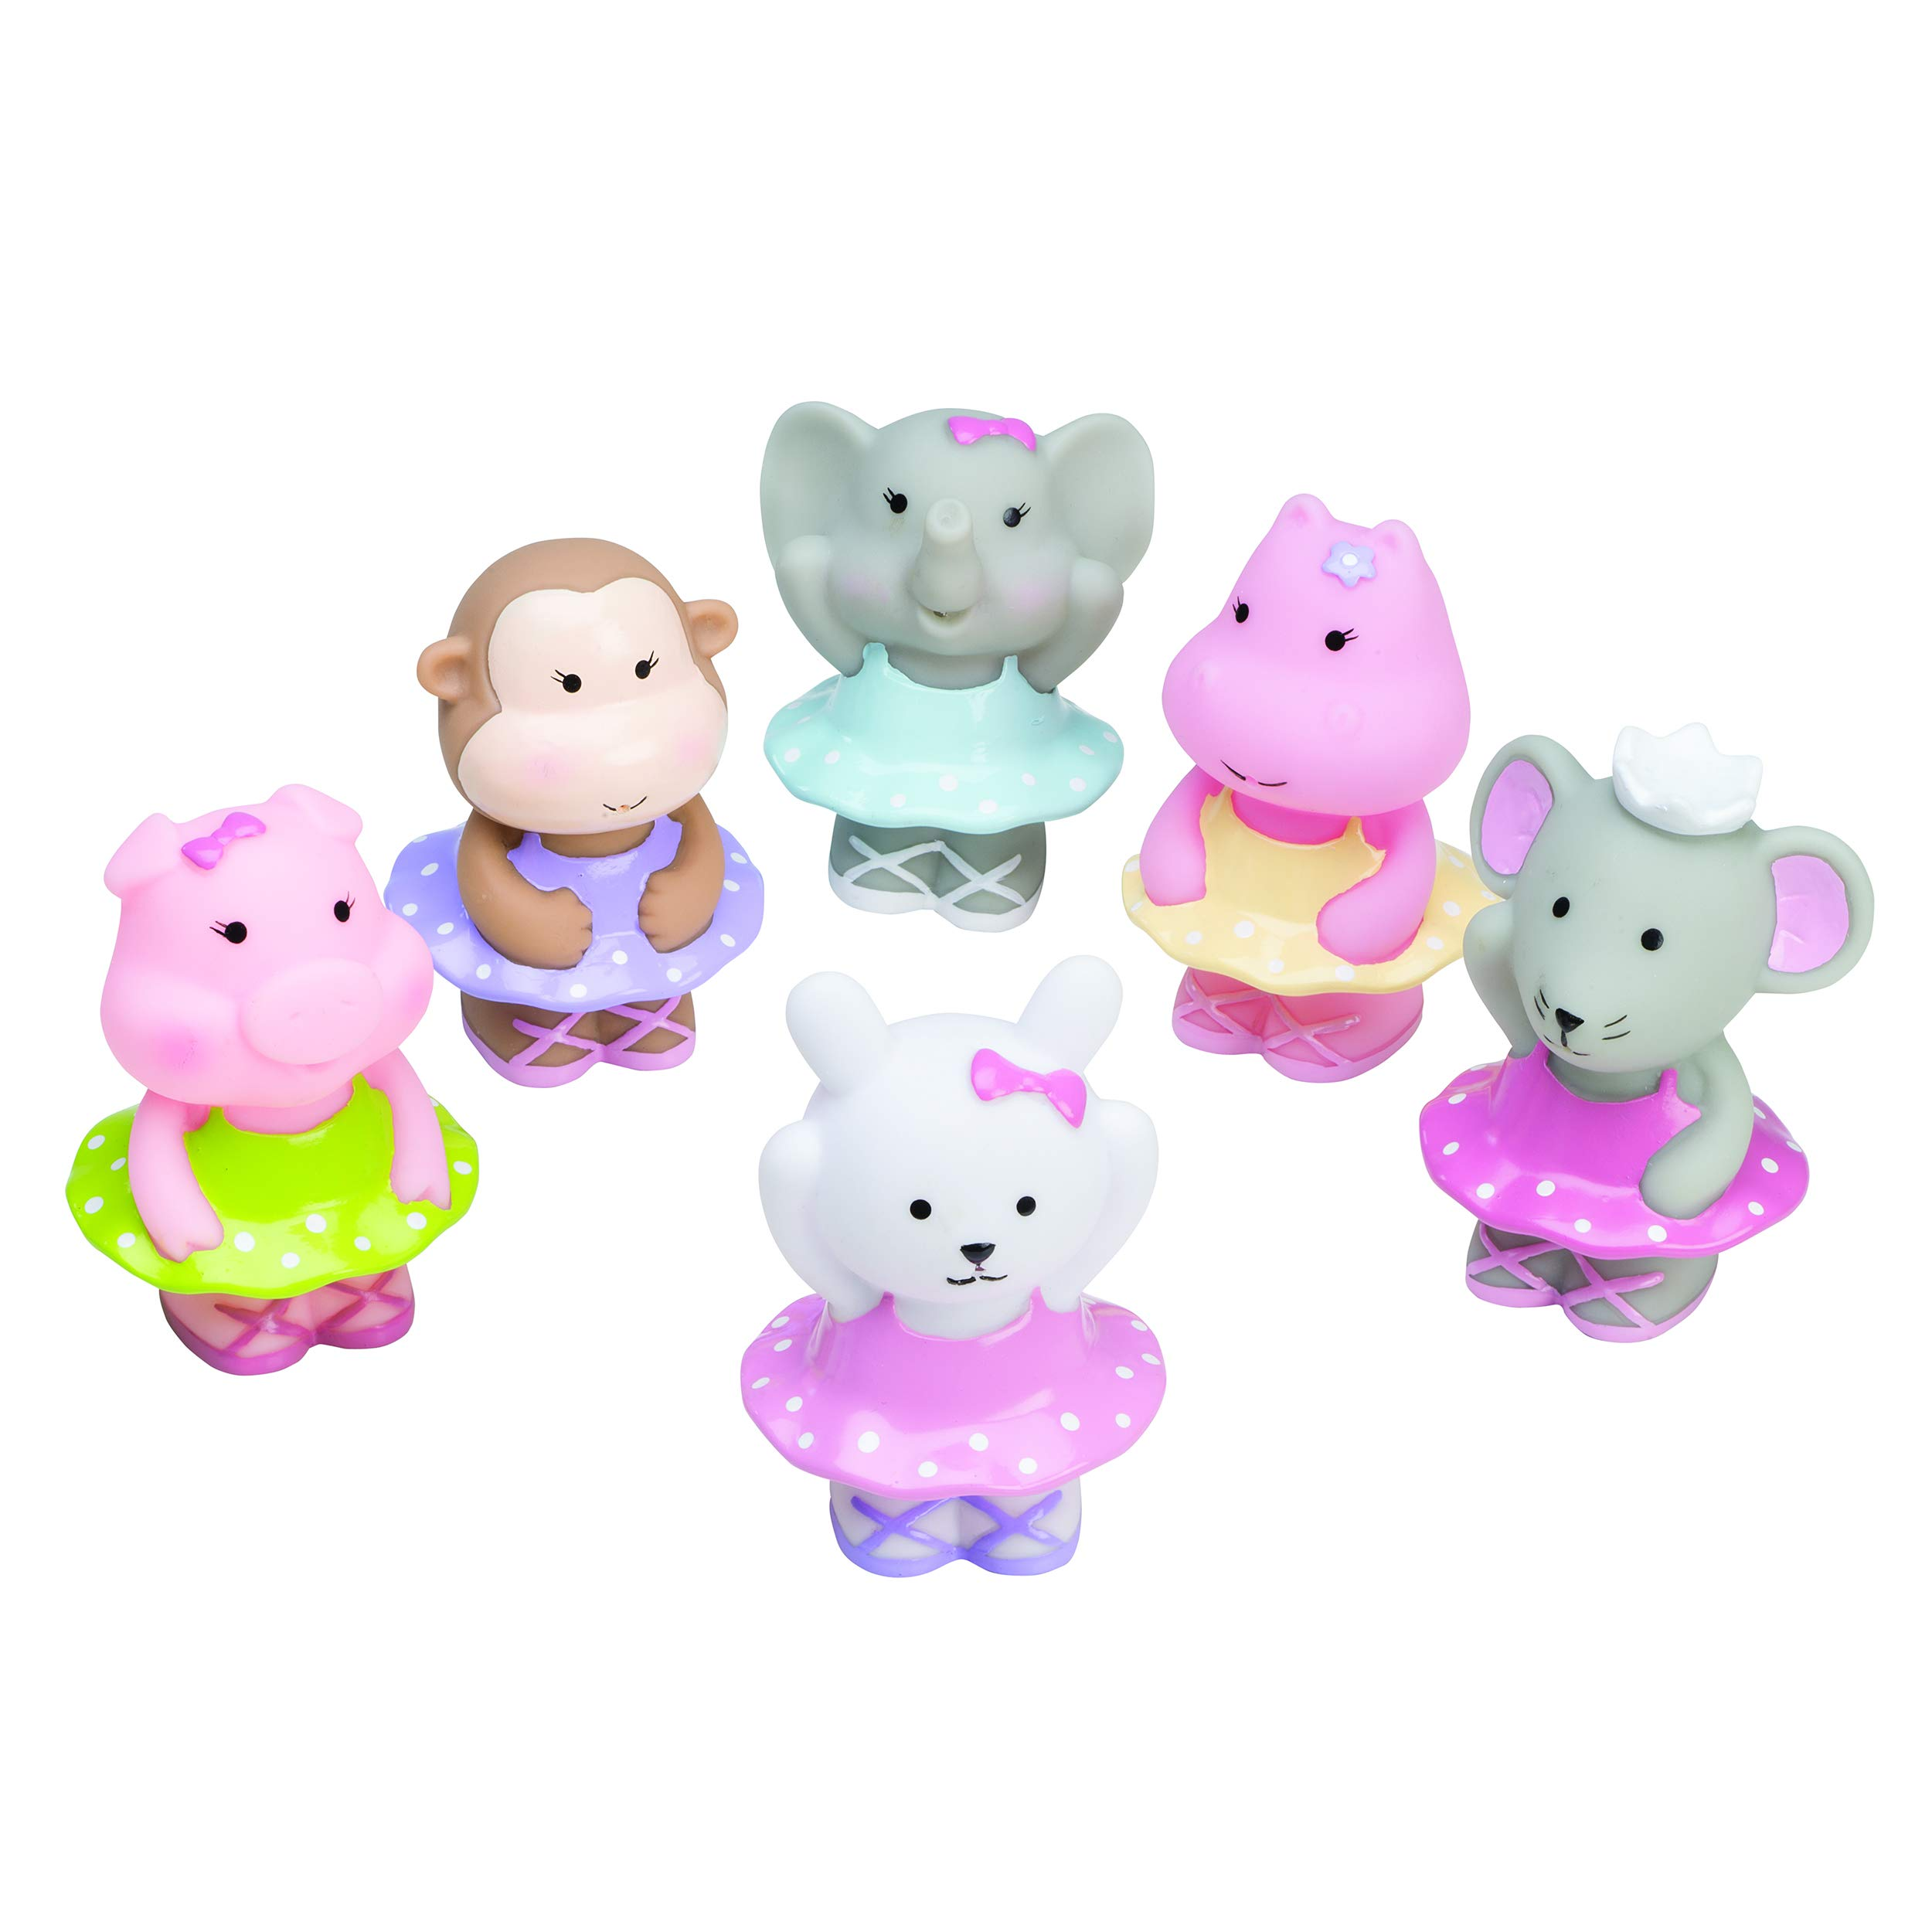 d6b127d2228b0 Amazon.com   Best Elegant Baby 6 Piece Bath Time Fun Rubber Water Squirties